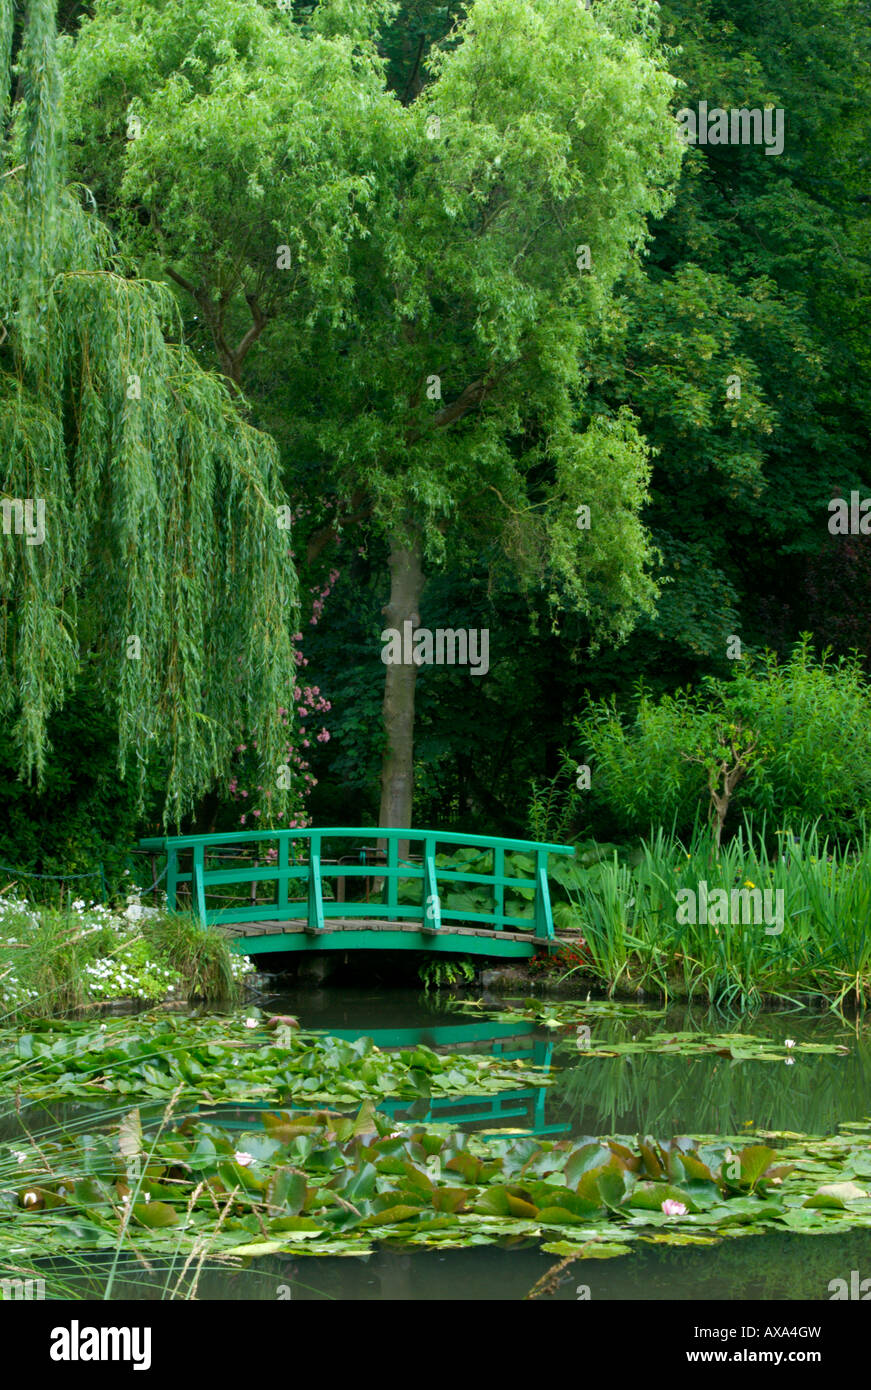 water-gardenwater-lily-pond-with-japanese-bridge-at-claude-monets-AXA4GW.jpg